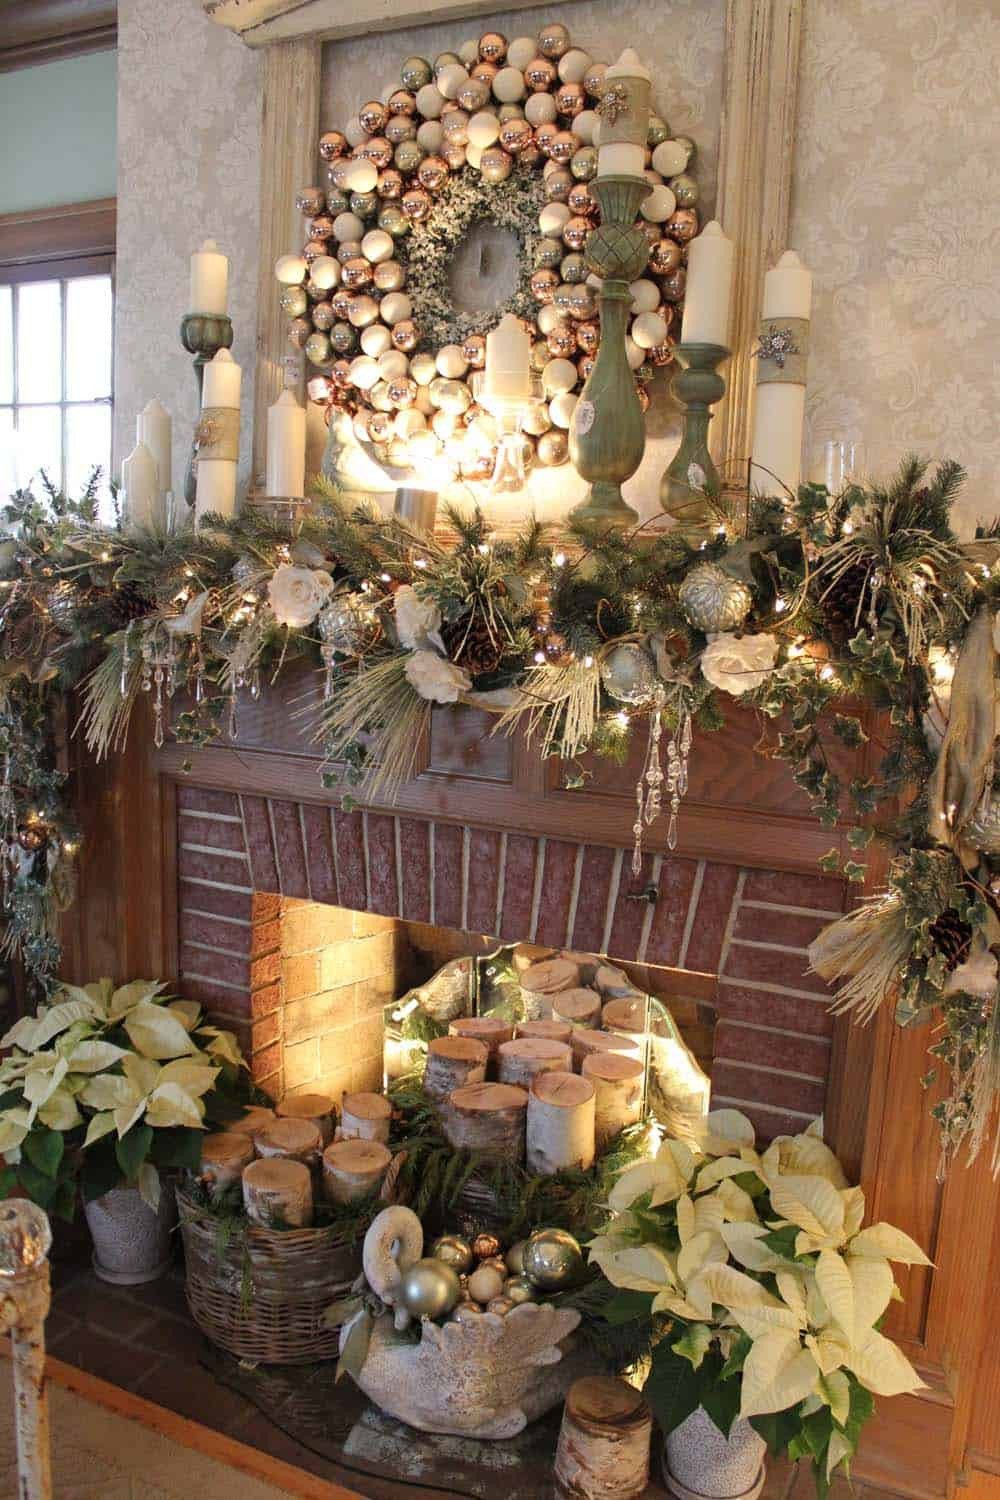 Christmas Decor for Fireplace Mantels Awesome 50 Absolutely Fabulous Christmas Mantel Decorating Ideas